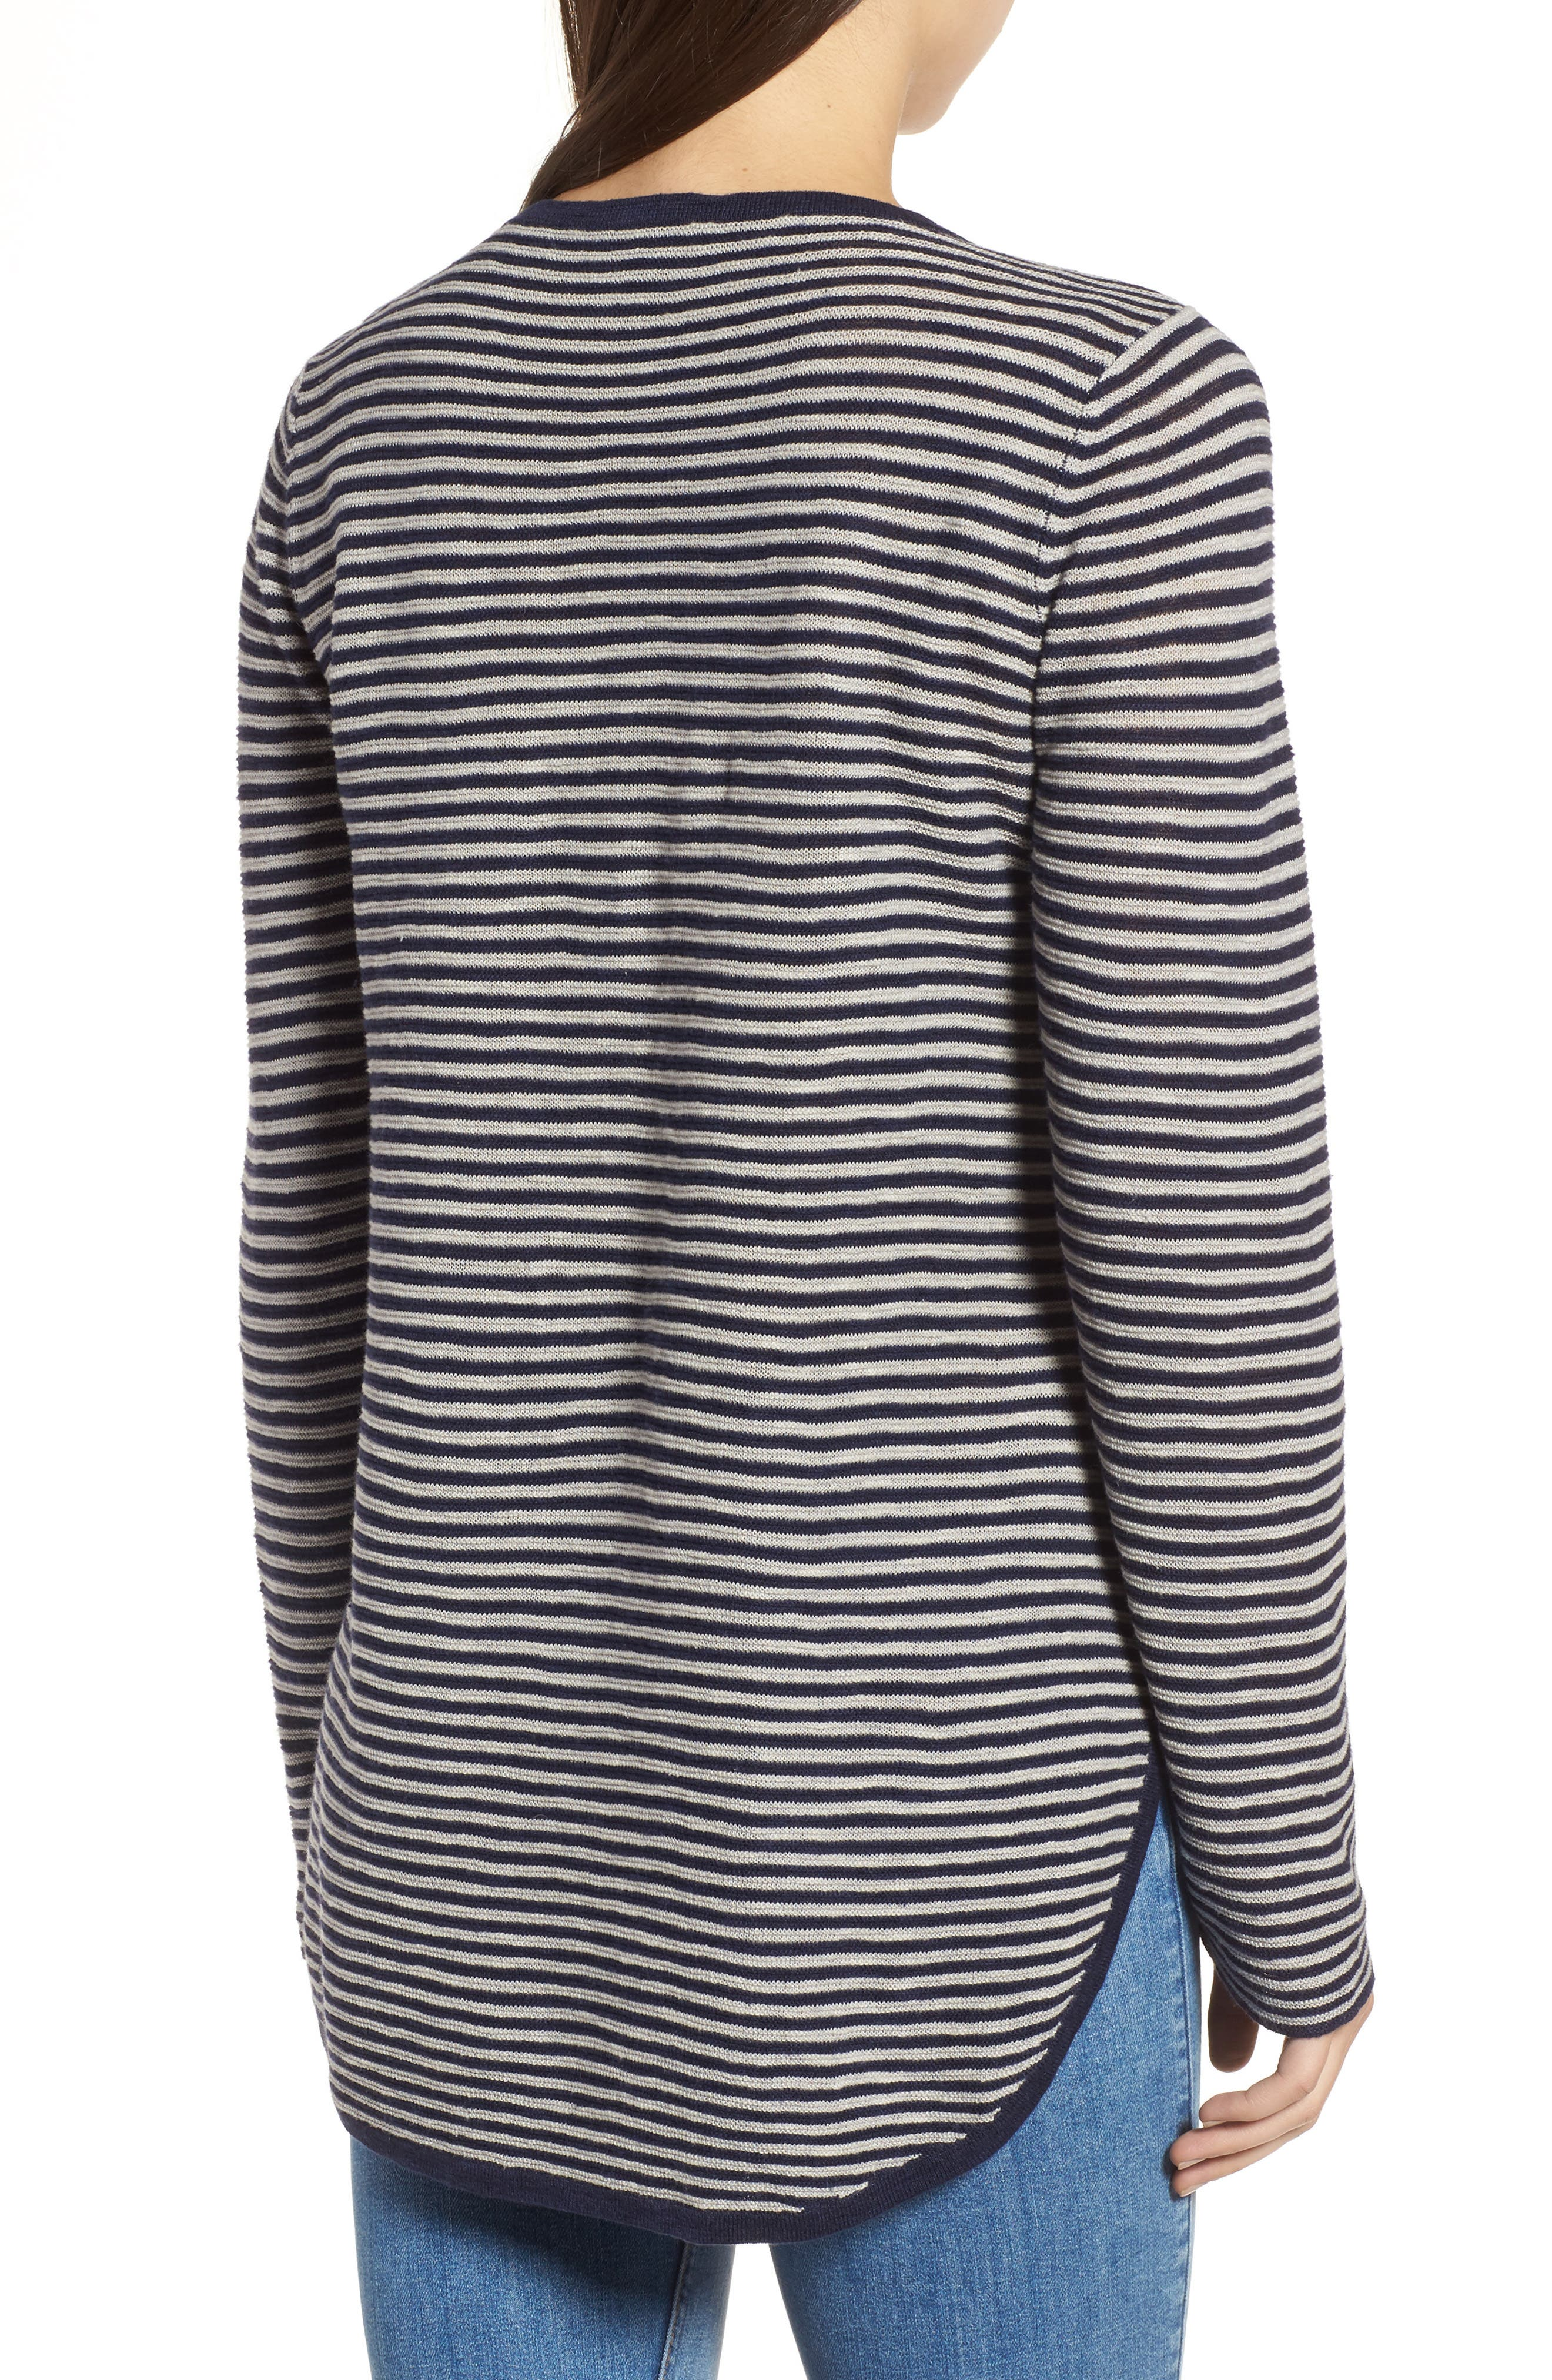 Stripe Organic Linen & Cotton Sweater,                             Alternate thumbnail 2, color,                             Midnight